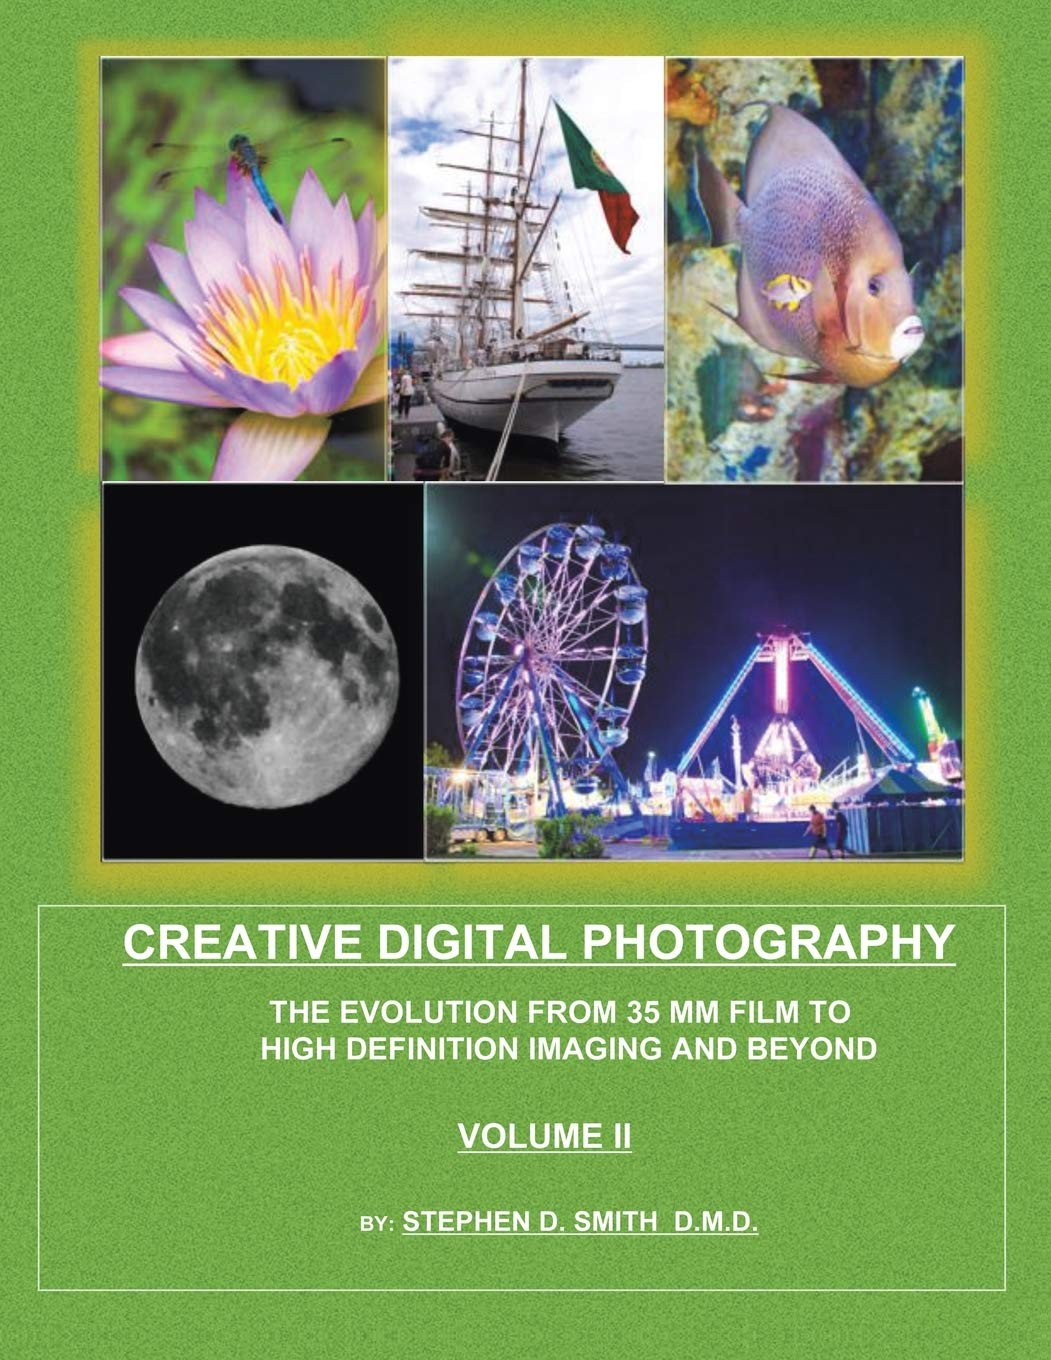 Creative Digital Photography The Evolution From 35mm Film To High Definition Imaging And Beyond Volume Two Smith D M D Stephen D 9781495809637 Amazon Com Books